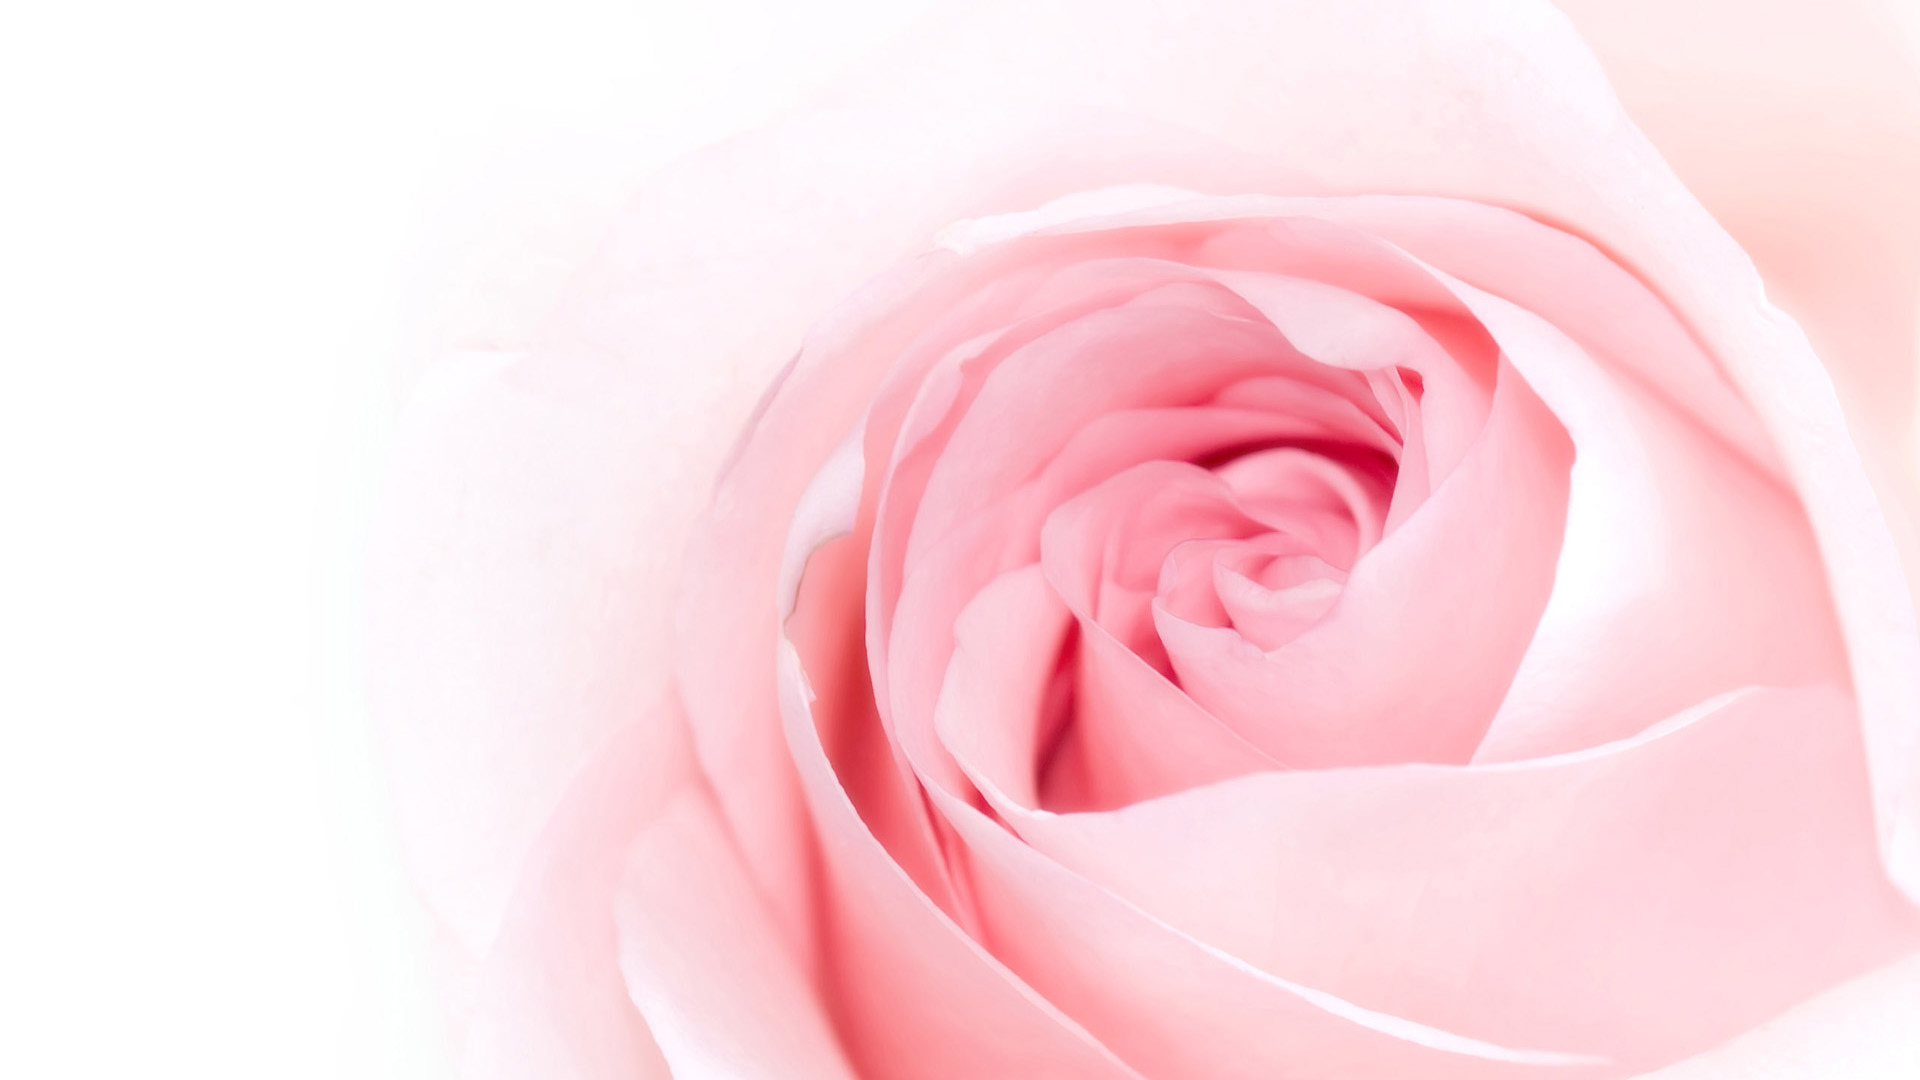 Pink Rose Wallpapers HD Pictures  Flowers  One HD Wallpaper 1920x1080